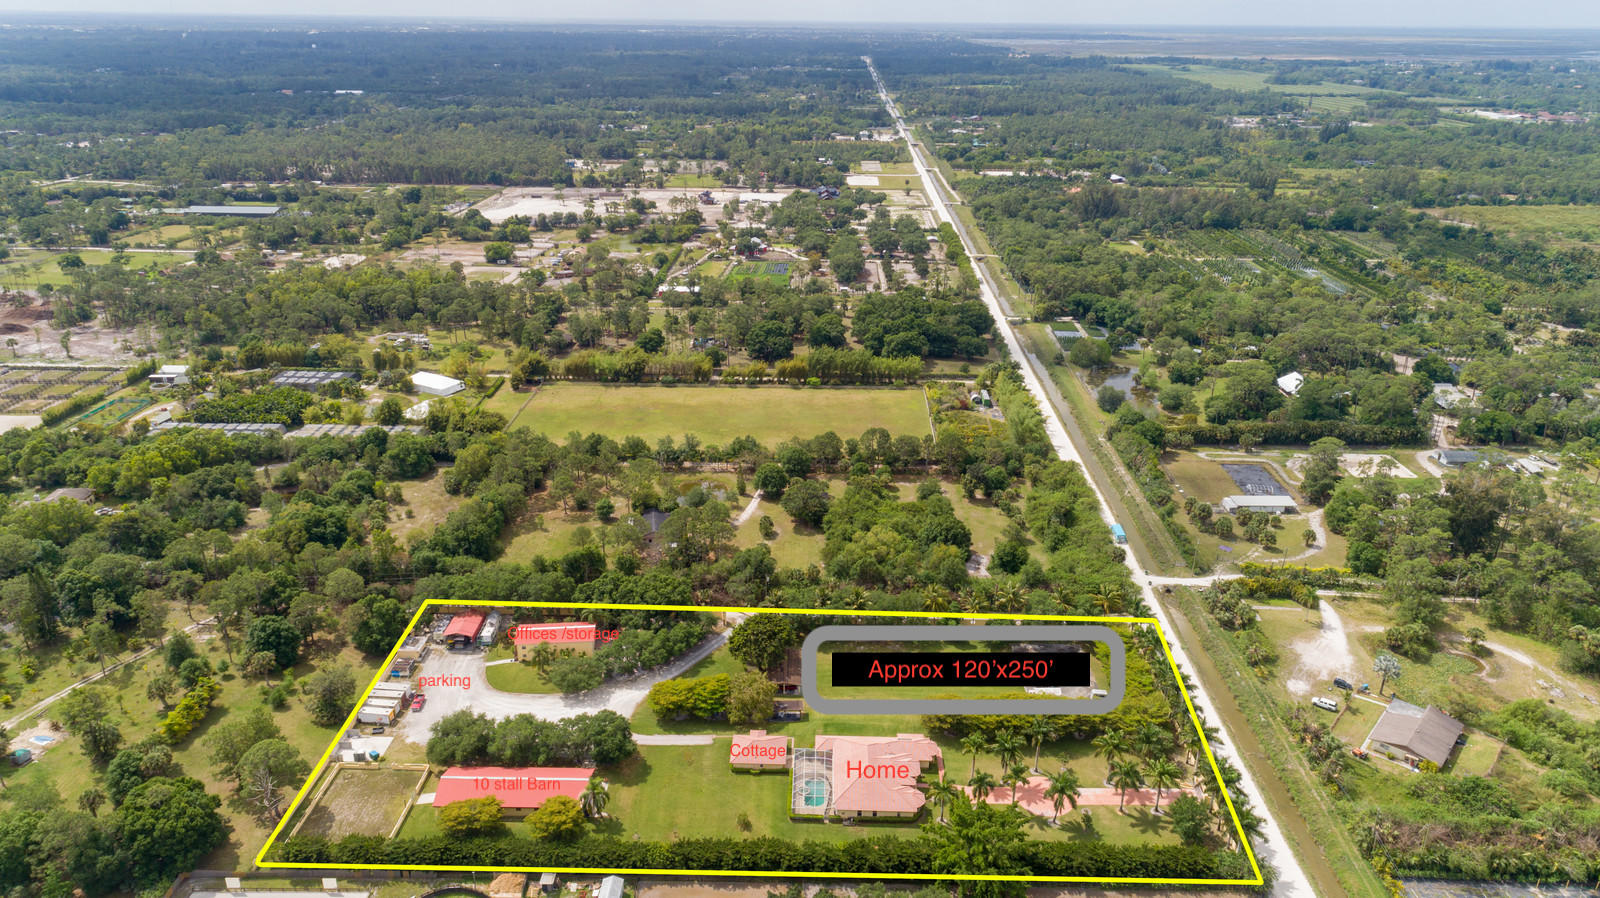 5 ACRE RESIDENTIAL COMPOUND